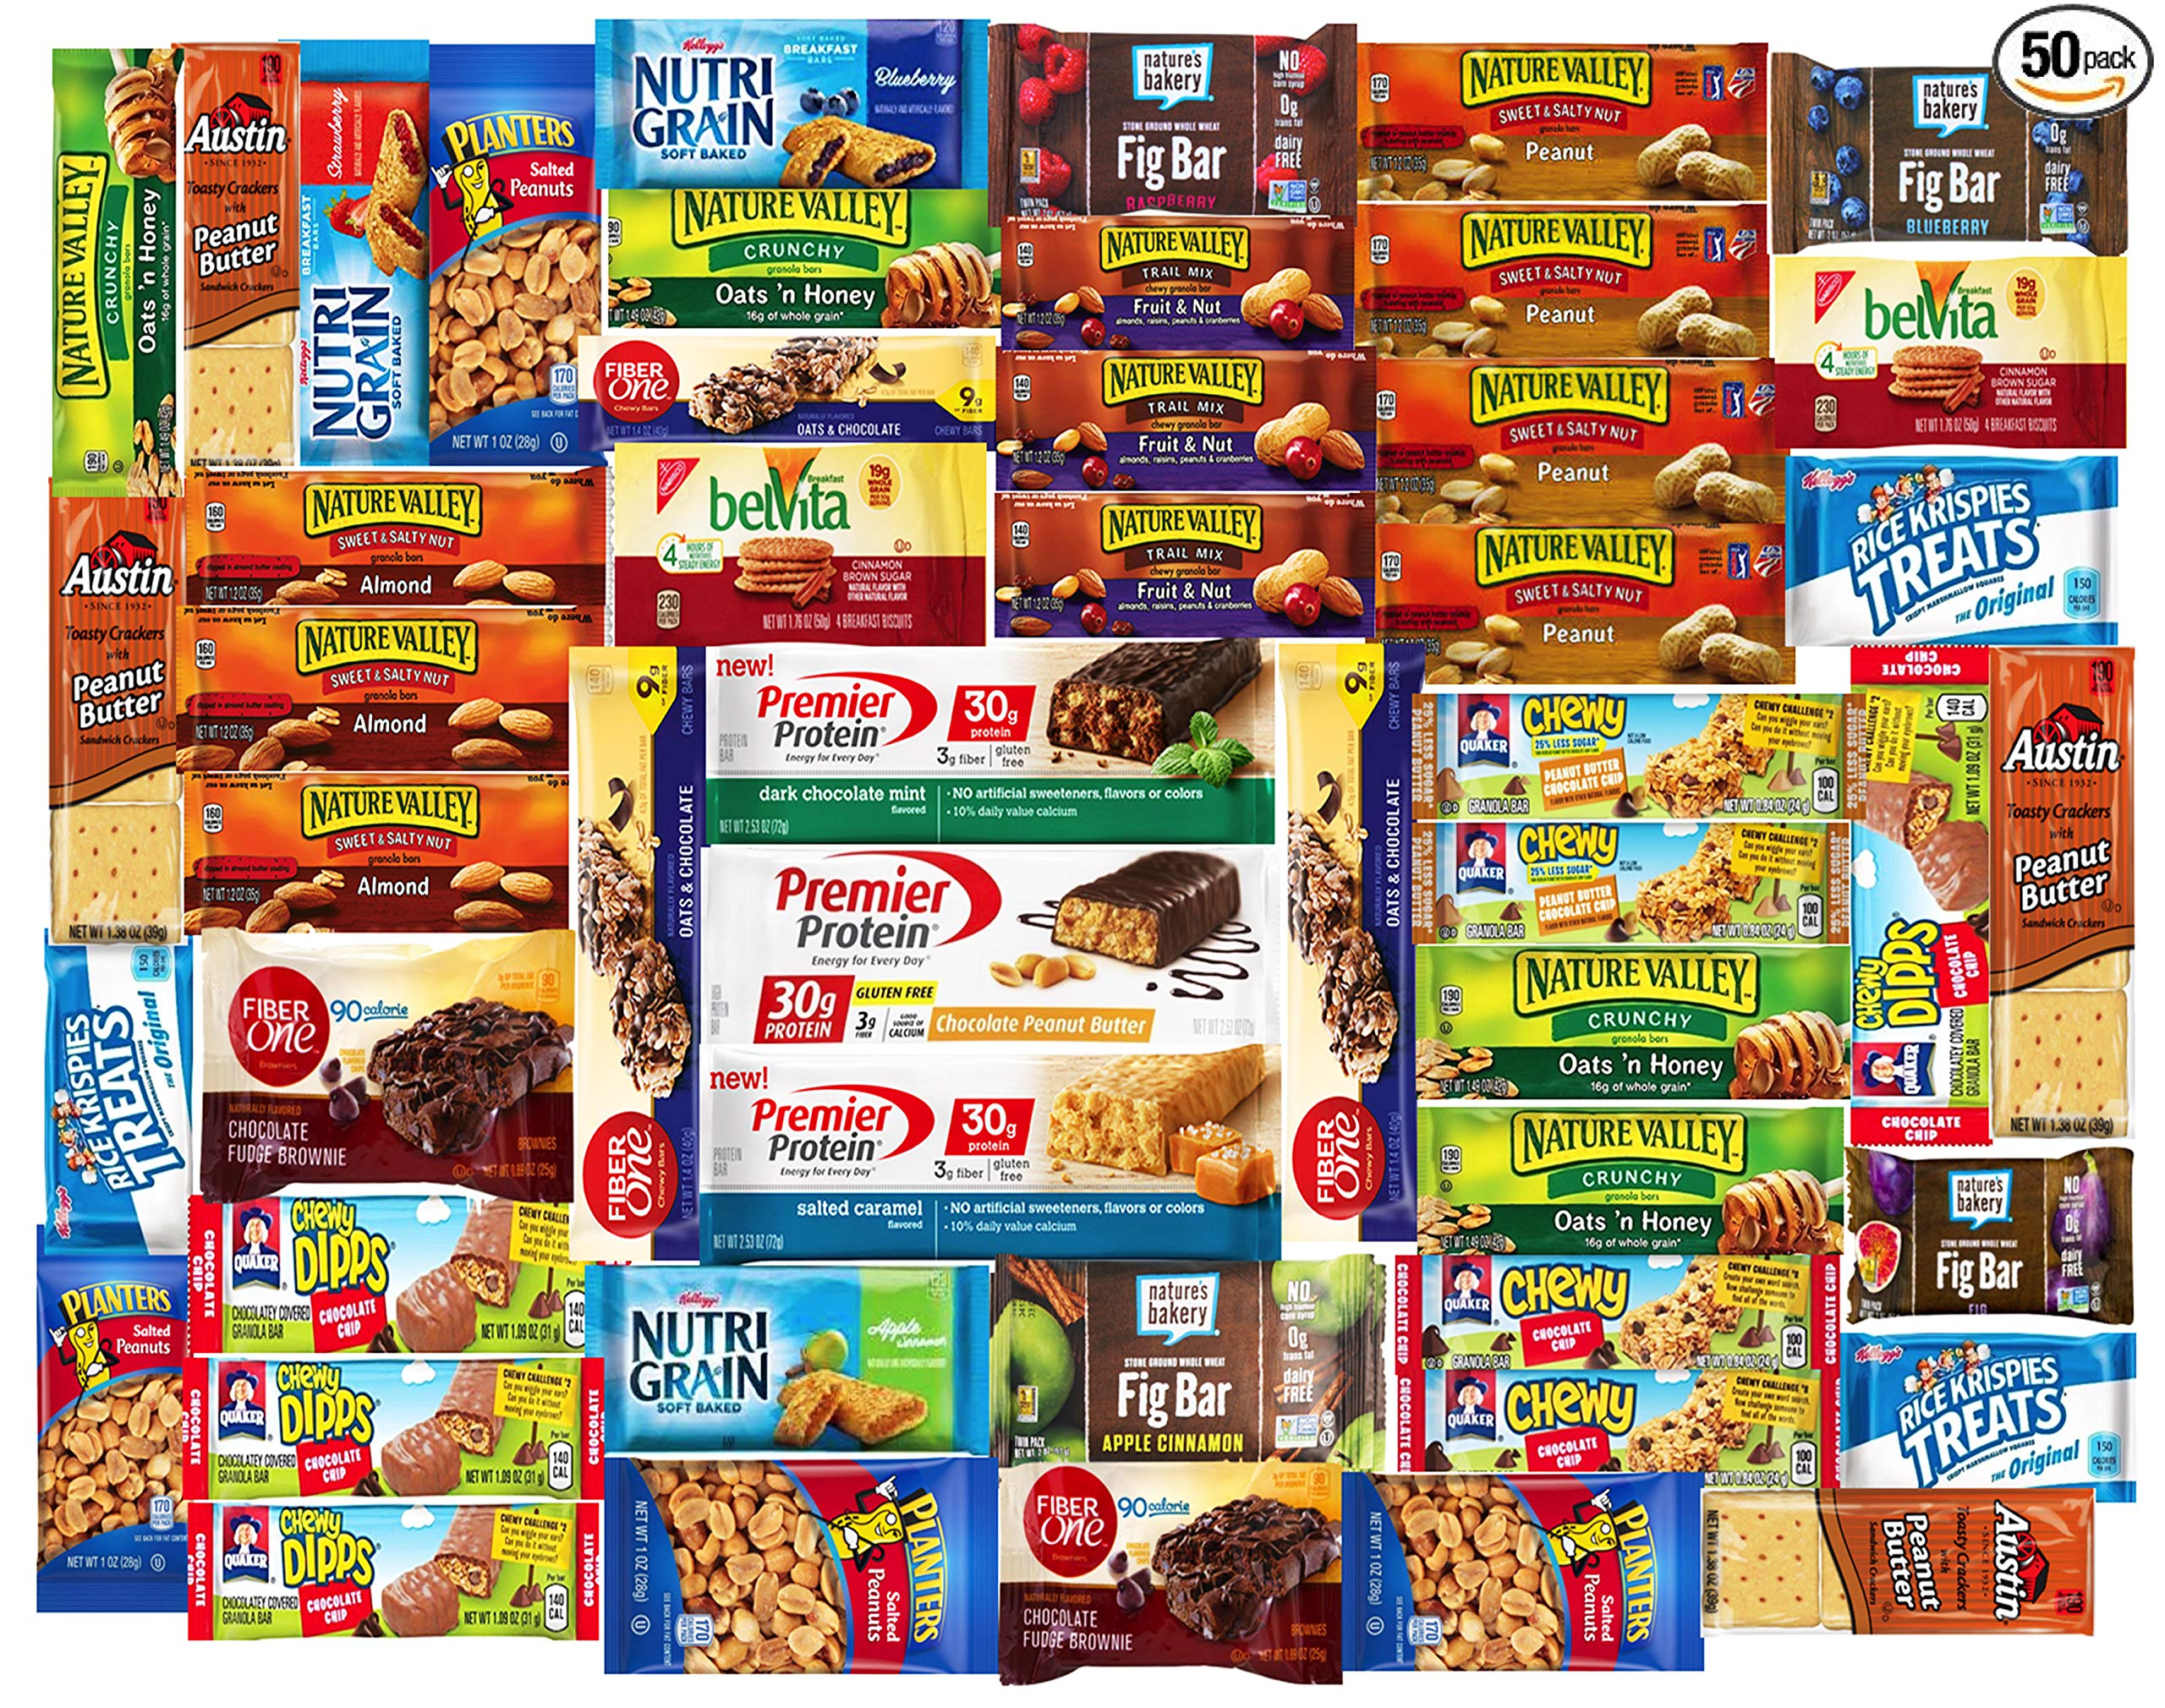 Healthy Snacks and Bars Variety Pack Gift Snack Box - Bulk Sampler (Care Package 50 Count)